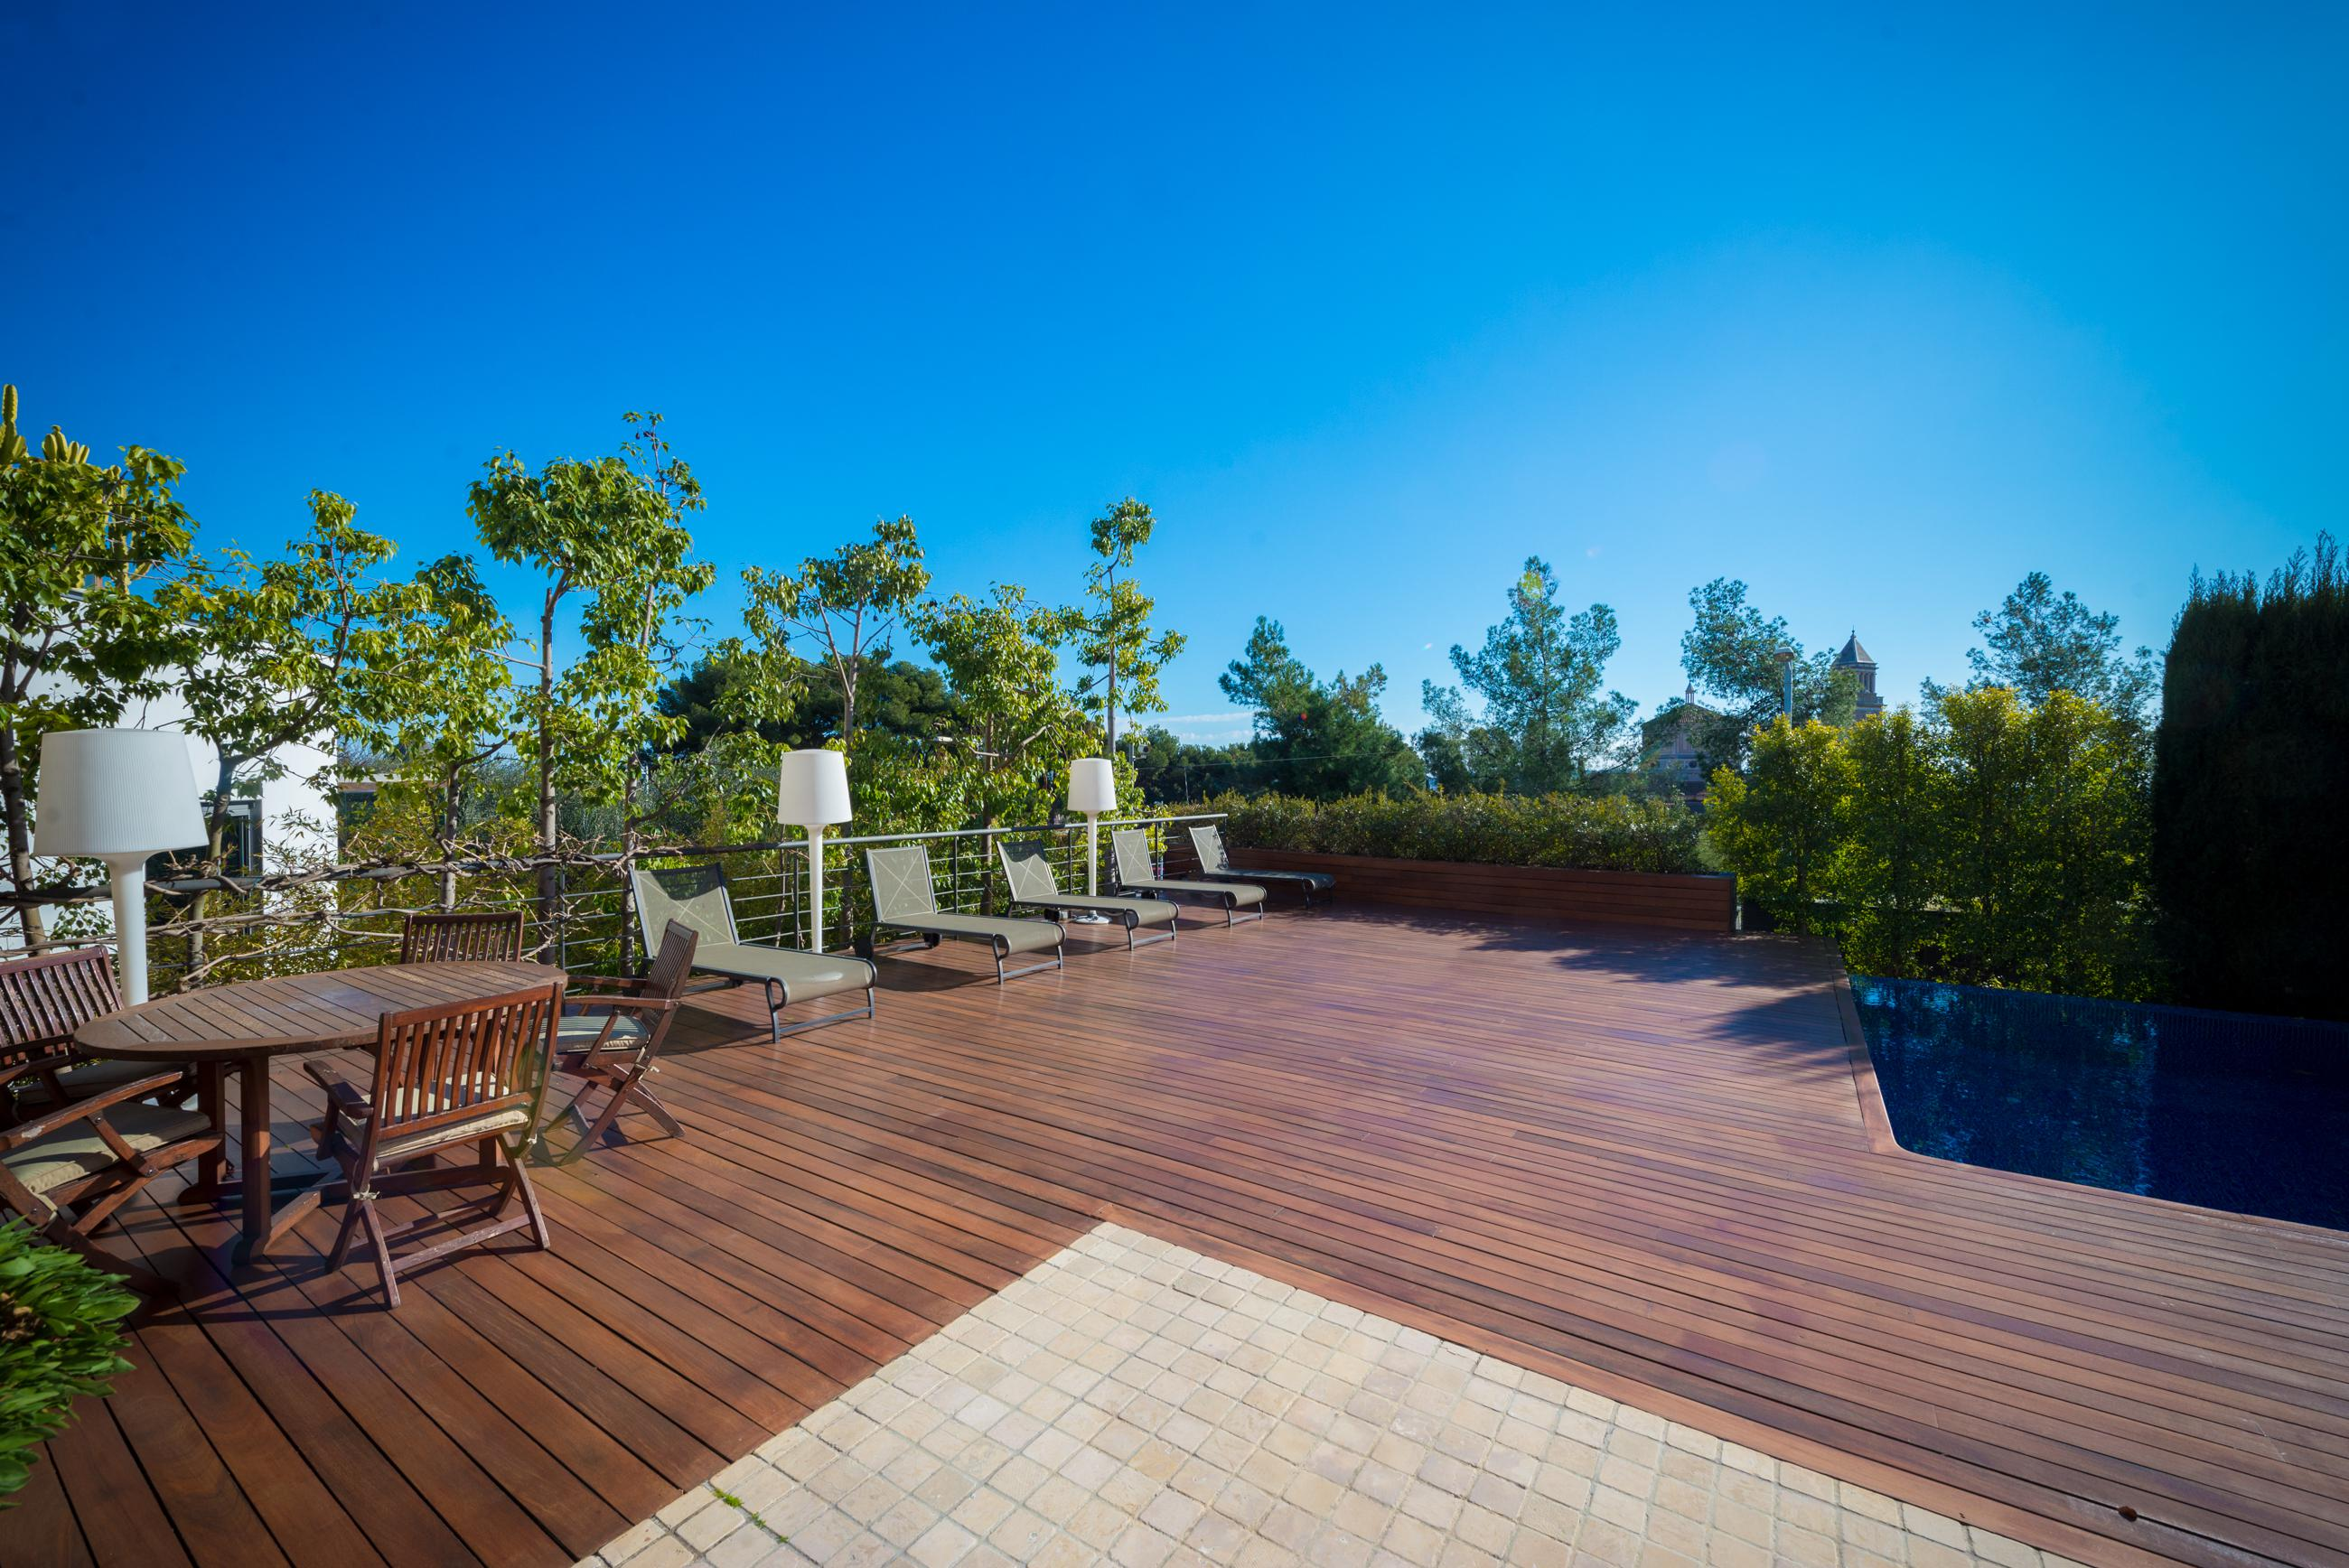 251384 Detached House for sale in Les Corts, Pedralbes 2